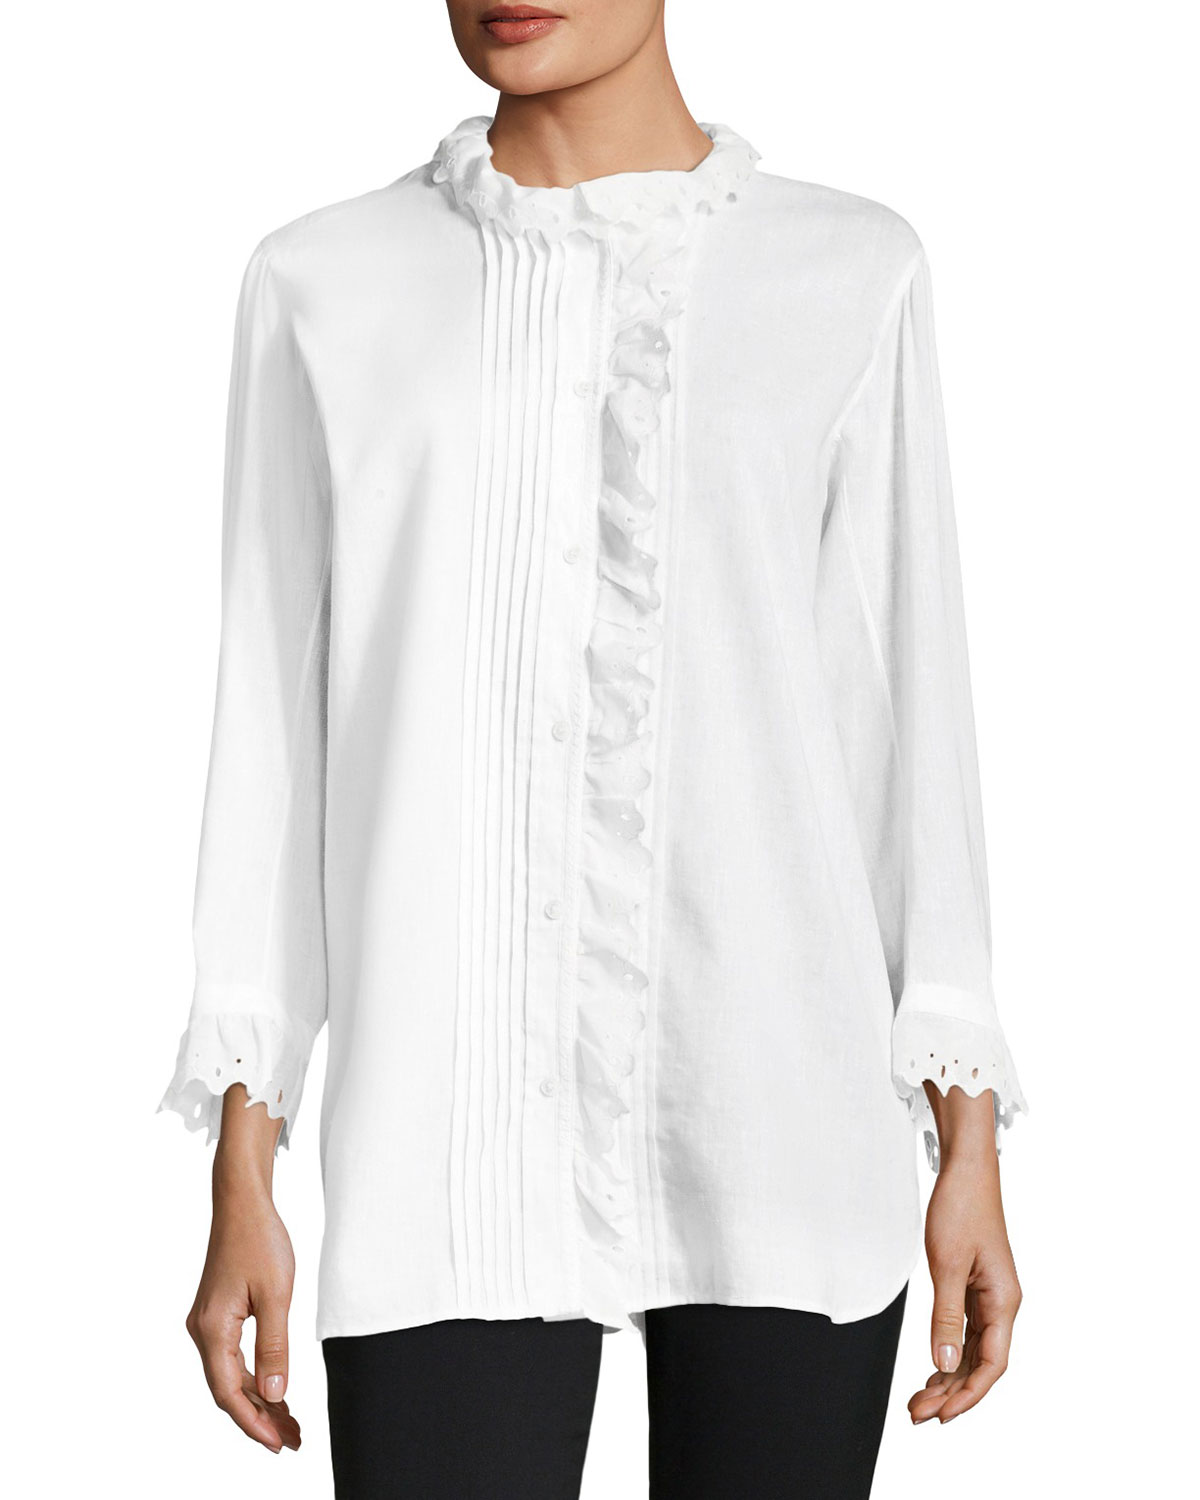 Begonia Big Shirt w/ Ruffle Trim